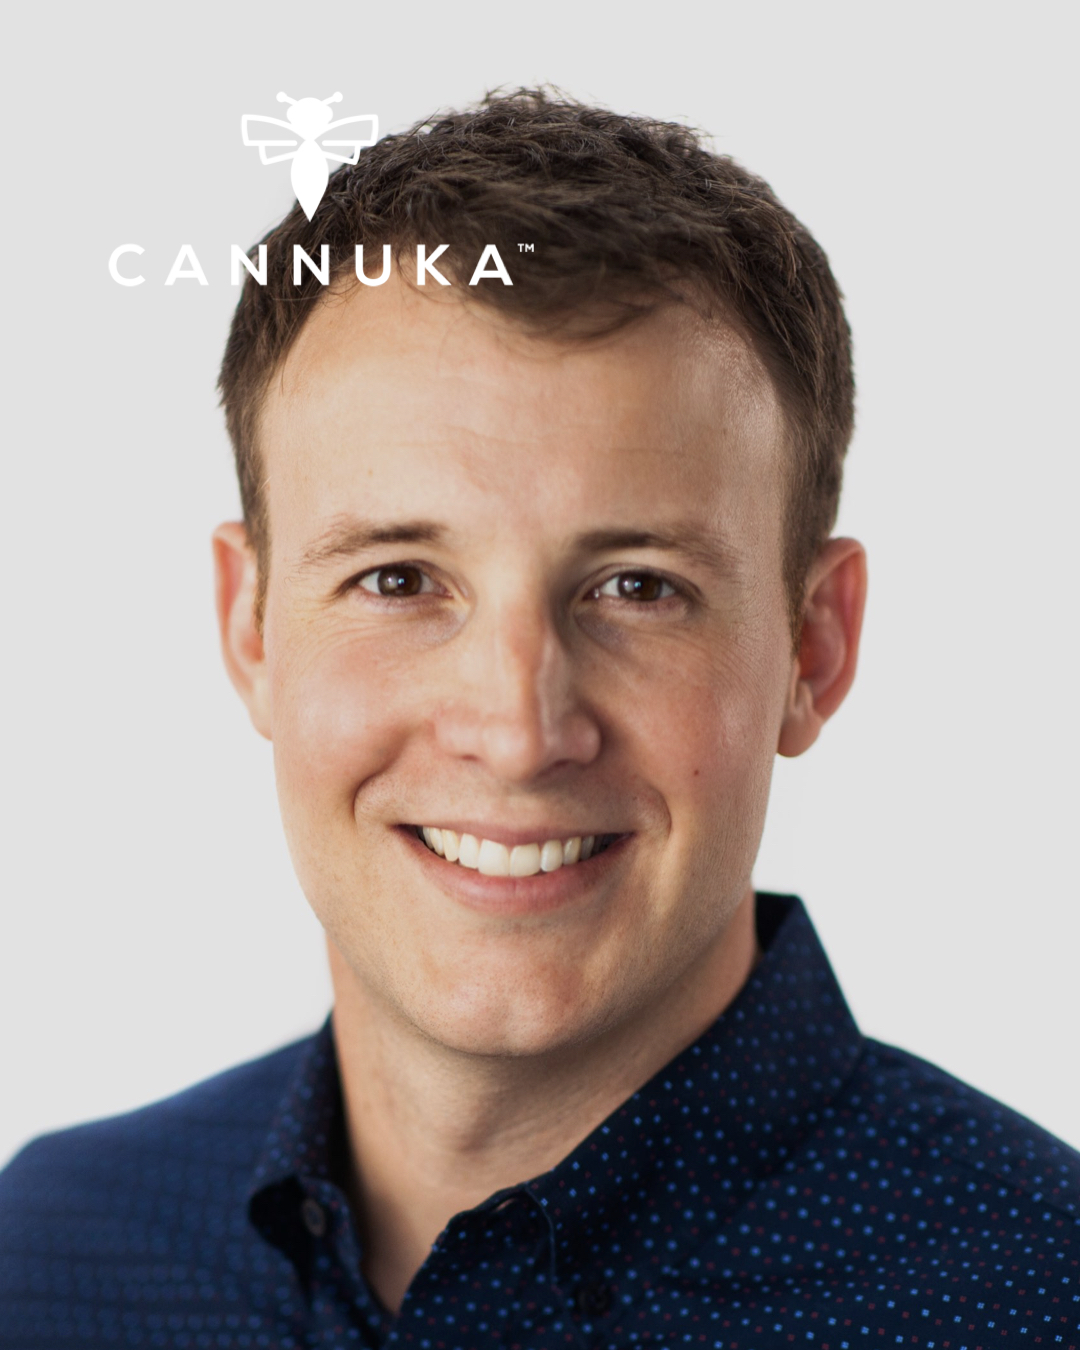 Michael Bumgarner, Founder & CEO, Cannuka - Michael Bumgarner is the Founder of Cannuka, the clean beauty skincare line for the canna-curious. Cannuka combines two powerful ingredients, CBD and Manuka honey. Cannuka was the first CBD skincare line to launch nationally in Ulta Beauty, making it the largest CBD beauty product launch in history at roughly 1200 doors. Michael is a firm believer that redefining and de-stigmatizing the word cannabis will ultimately improve people's health, the environment, and provide sustainable job opportunities throughout the vertical.